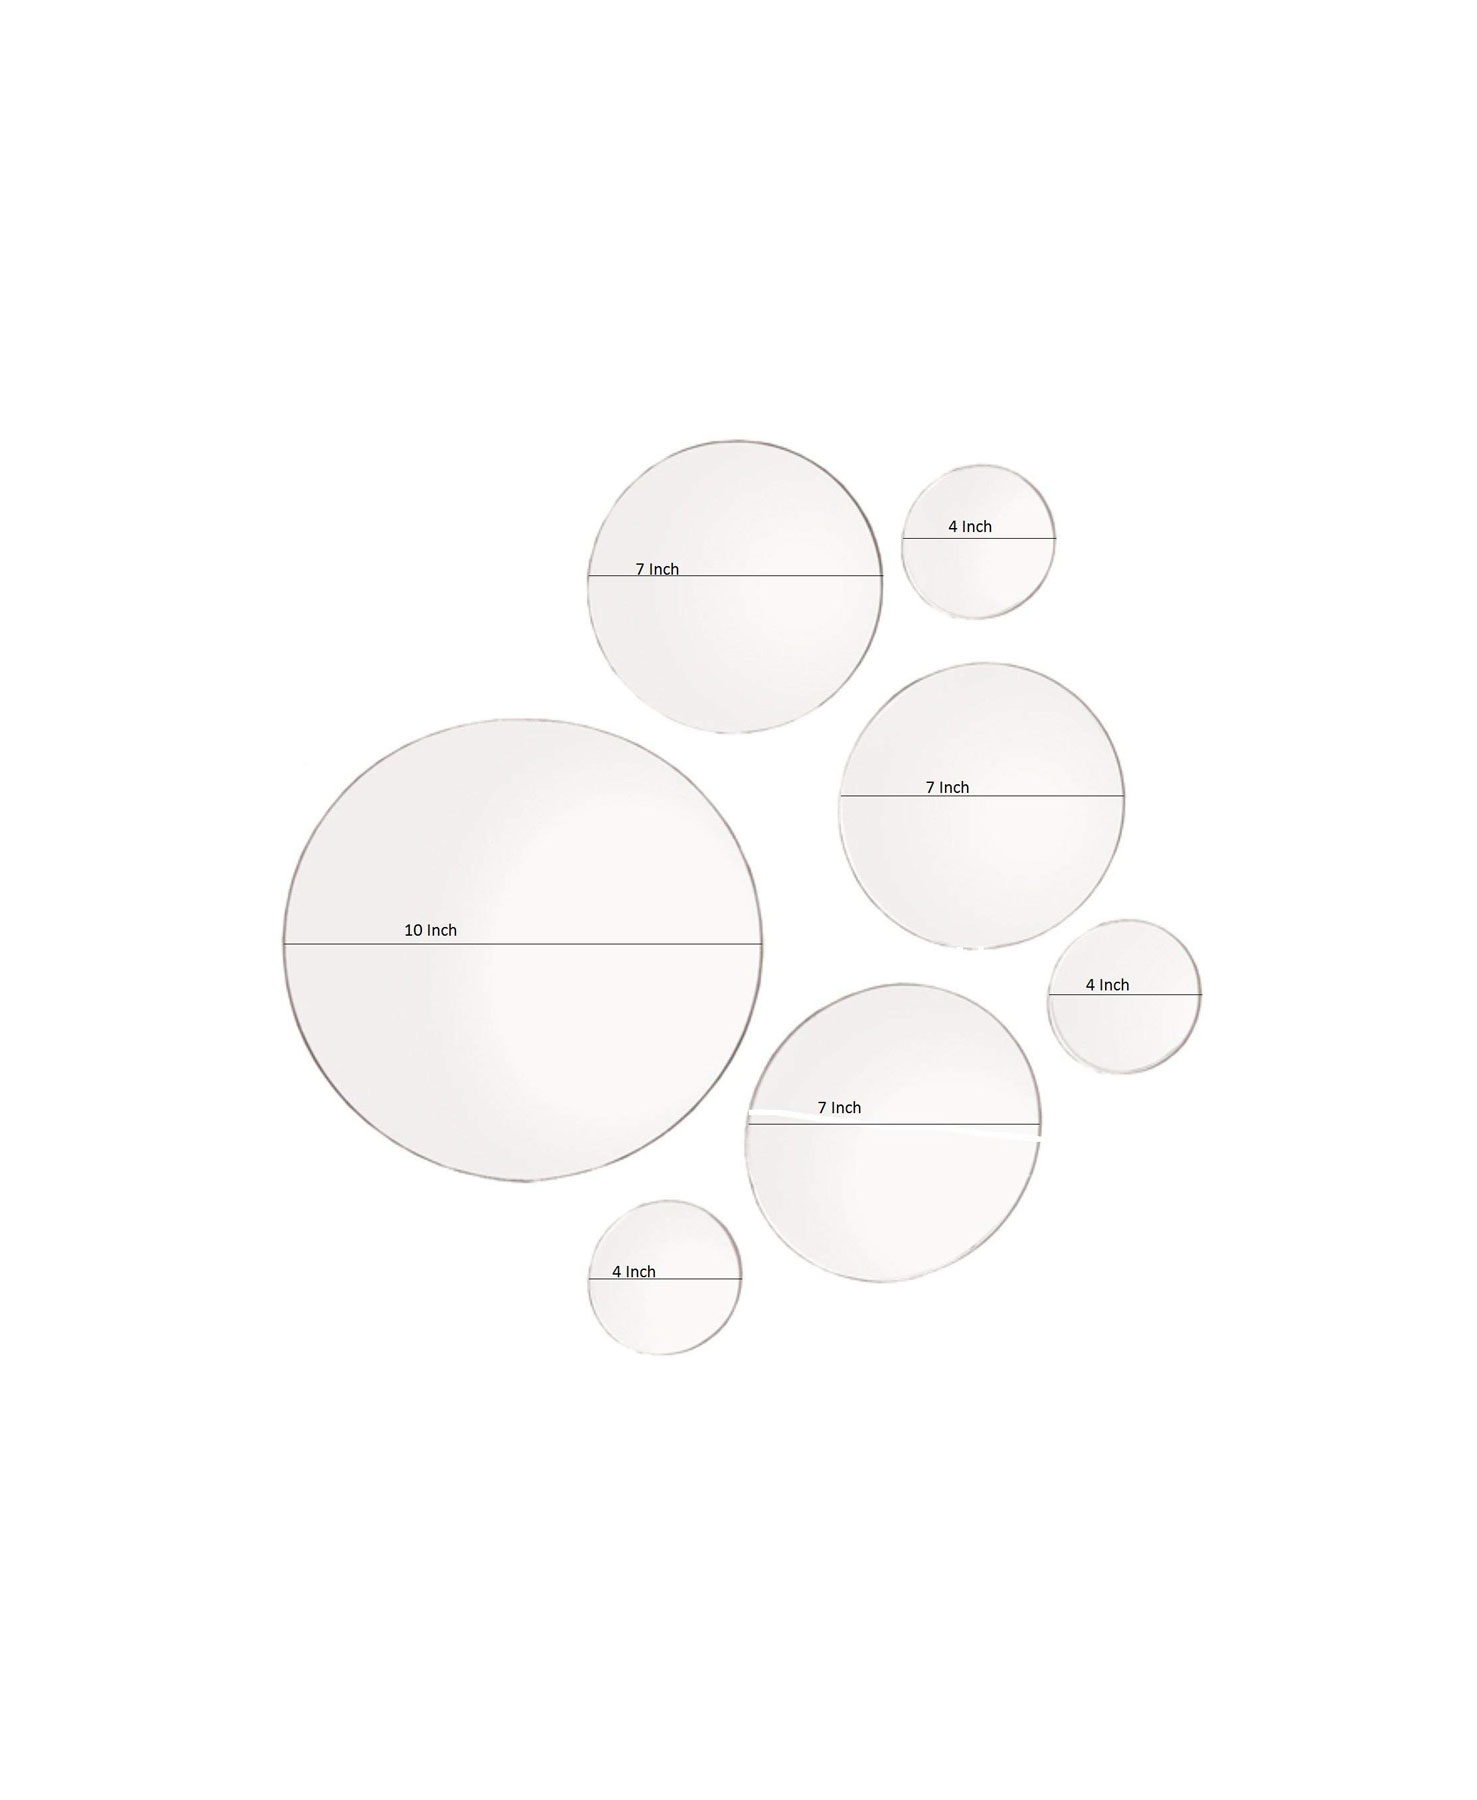 Light in the Dark Round Wall Mirror in Assorted Sizes